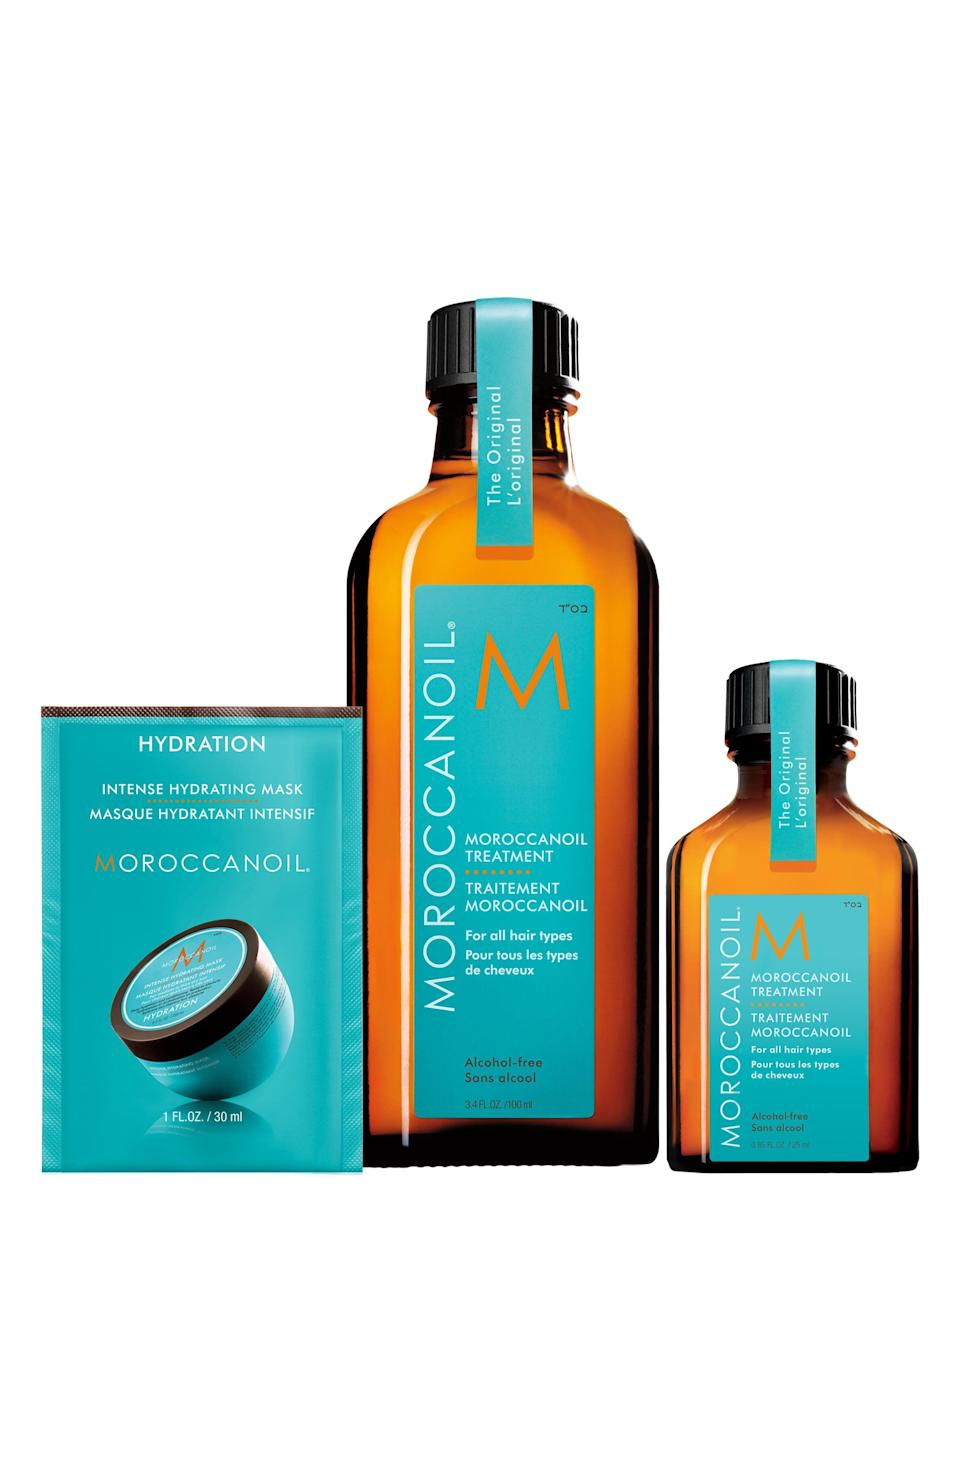 """<p><strong>MOROCCANOIL</strong></p><p>nordstrom.com</p><p><strong>$44.00</strong></p><p><a href=""""https://go.redirectingat.com?id=74968X1596630&url=https%3A%2F%2Fwww.nordstrom.com%2Fs%2Fmoroccanoil-treatment-set-66-value%2F5910295&sref=https%3A%2F%2Fwww.elle.com%2Fbeauty%2Fg36944650%2Fnorstrom-anniversary-beauty-sale-2021%2F"""" rel=""""nofollow noopener"""" target=""""_blank"""" data-ylk=""""slk:Shop Now"""" class=""""link rapid-noclick-resp"""">Shop Now</a></p><p>For hair that's dying of thirst, give them a glass of water in the form of hydrating hair oils and a luxe mask that will reverse all the damaging processes you've put your head through. </p>"""